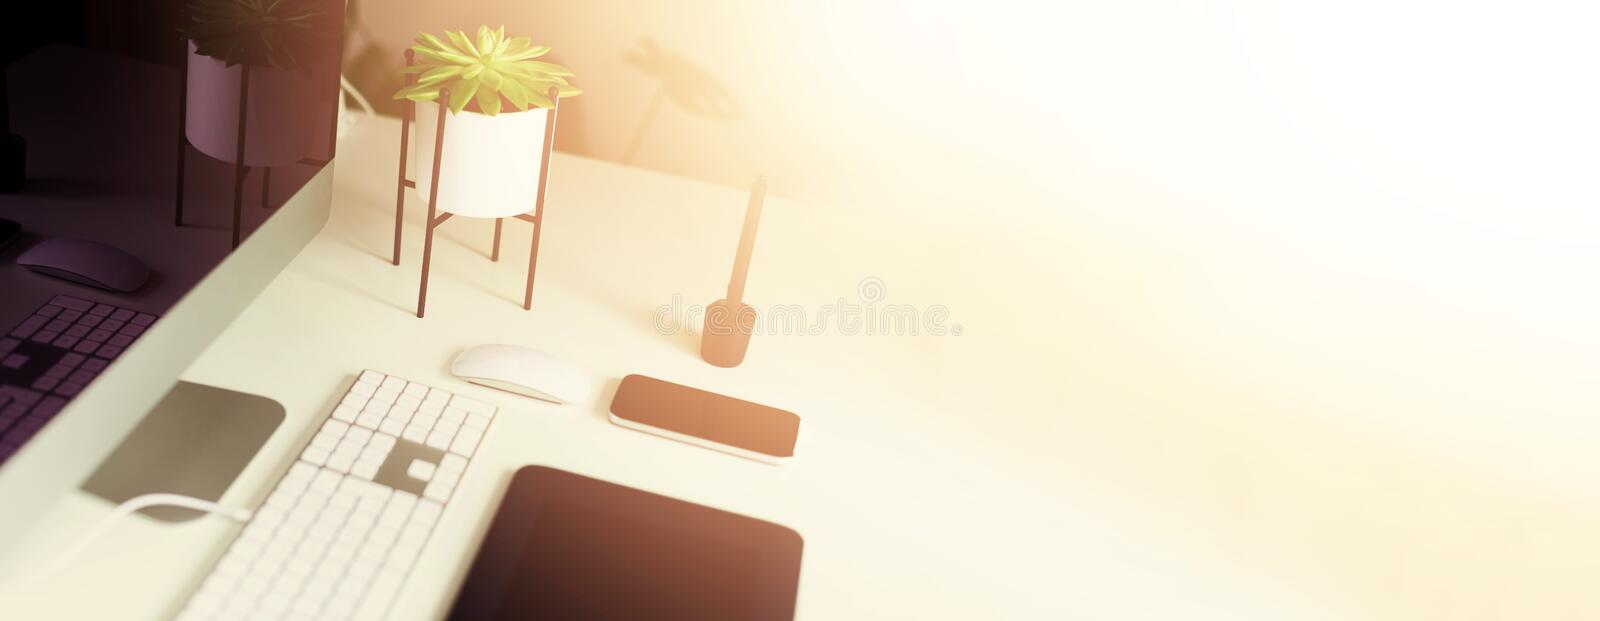 Keyboard, mouse, computer display with black blank screen. Front view. Designer workspace on grey background. Minimalistic home. Office. Copy space. Banner royalty free stock images